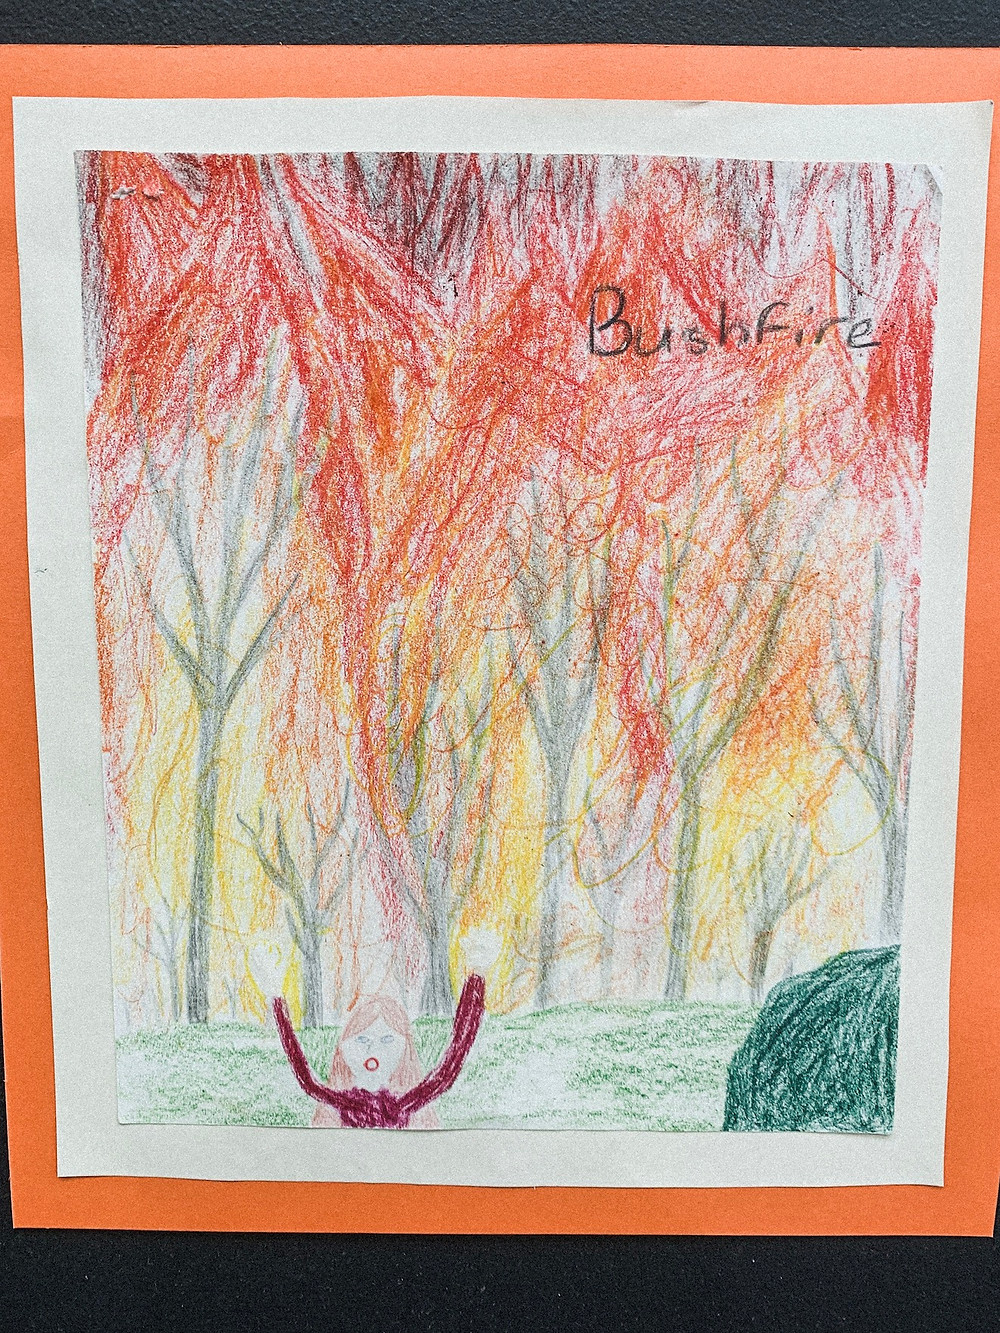 Drawing of Bushfire done by a child.